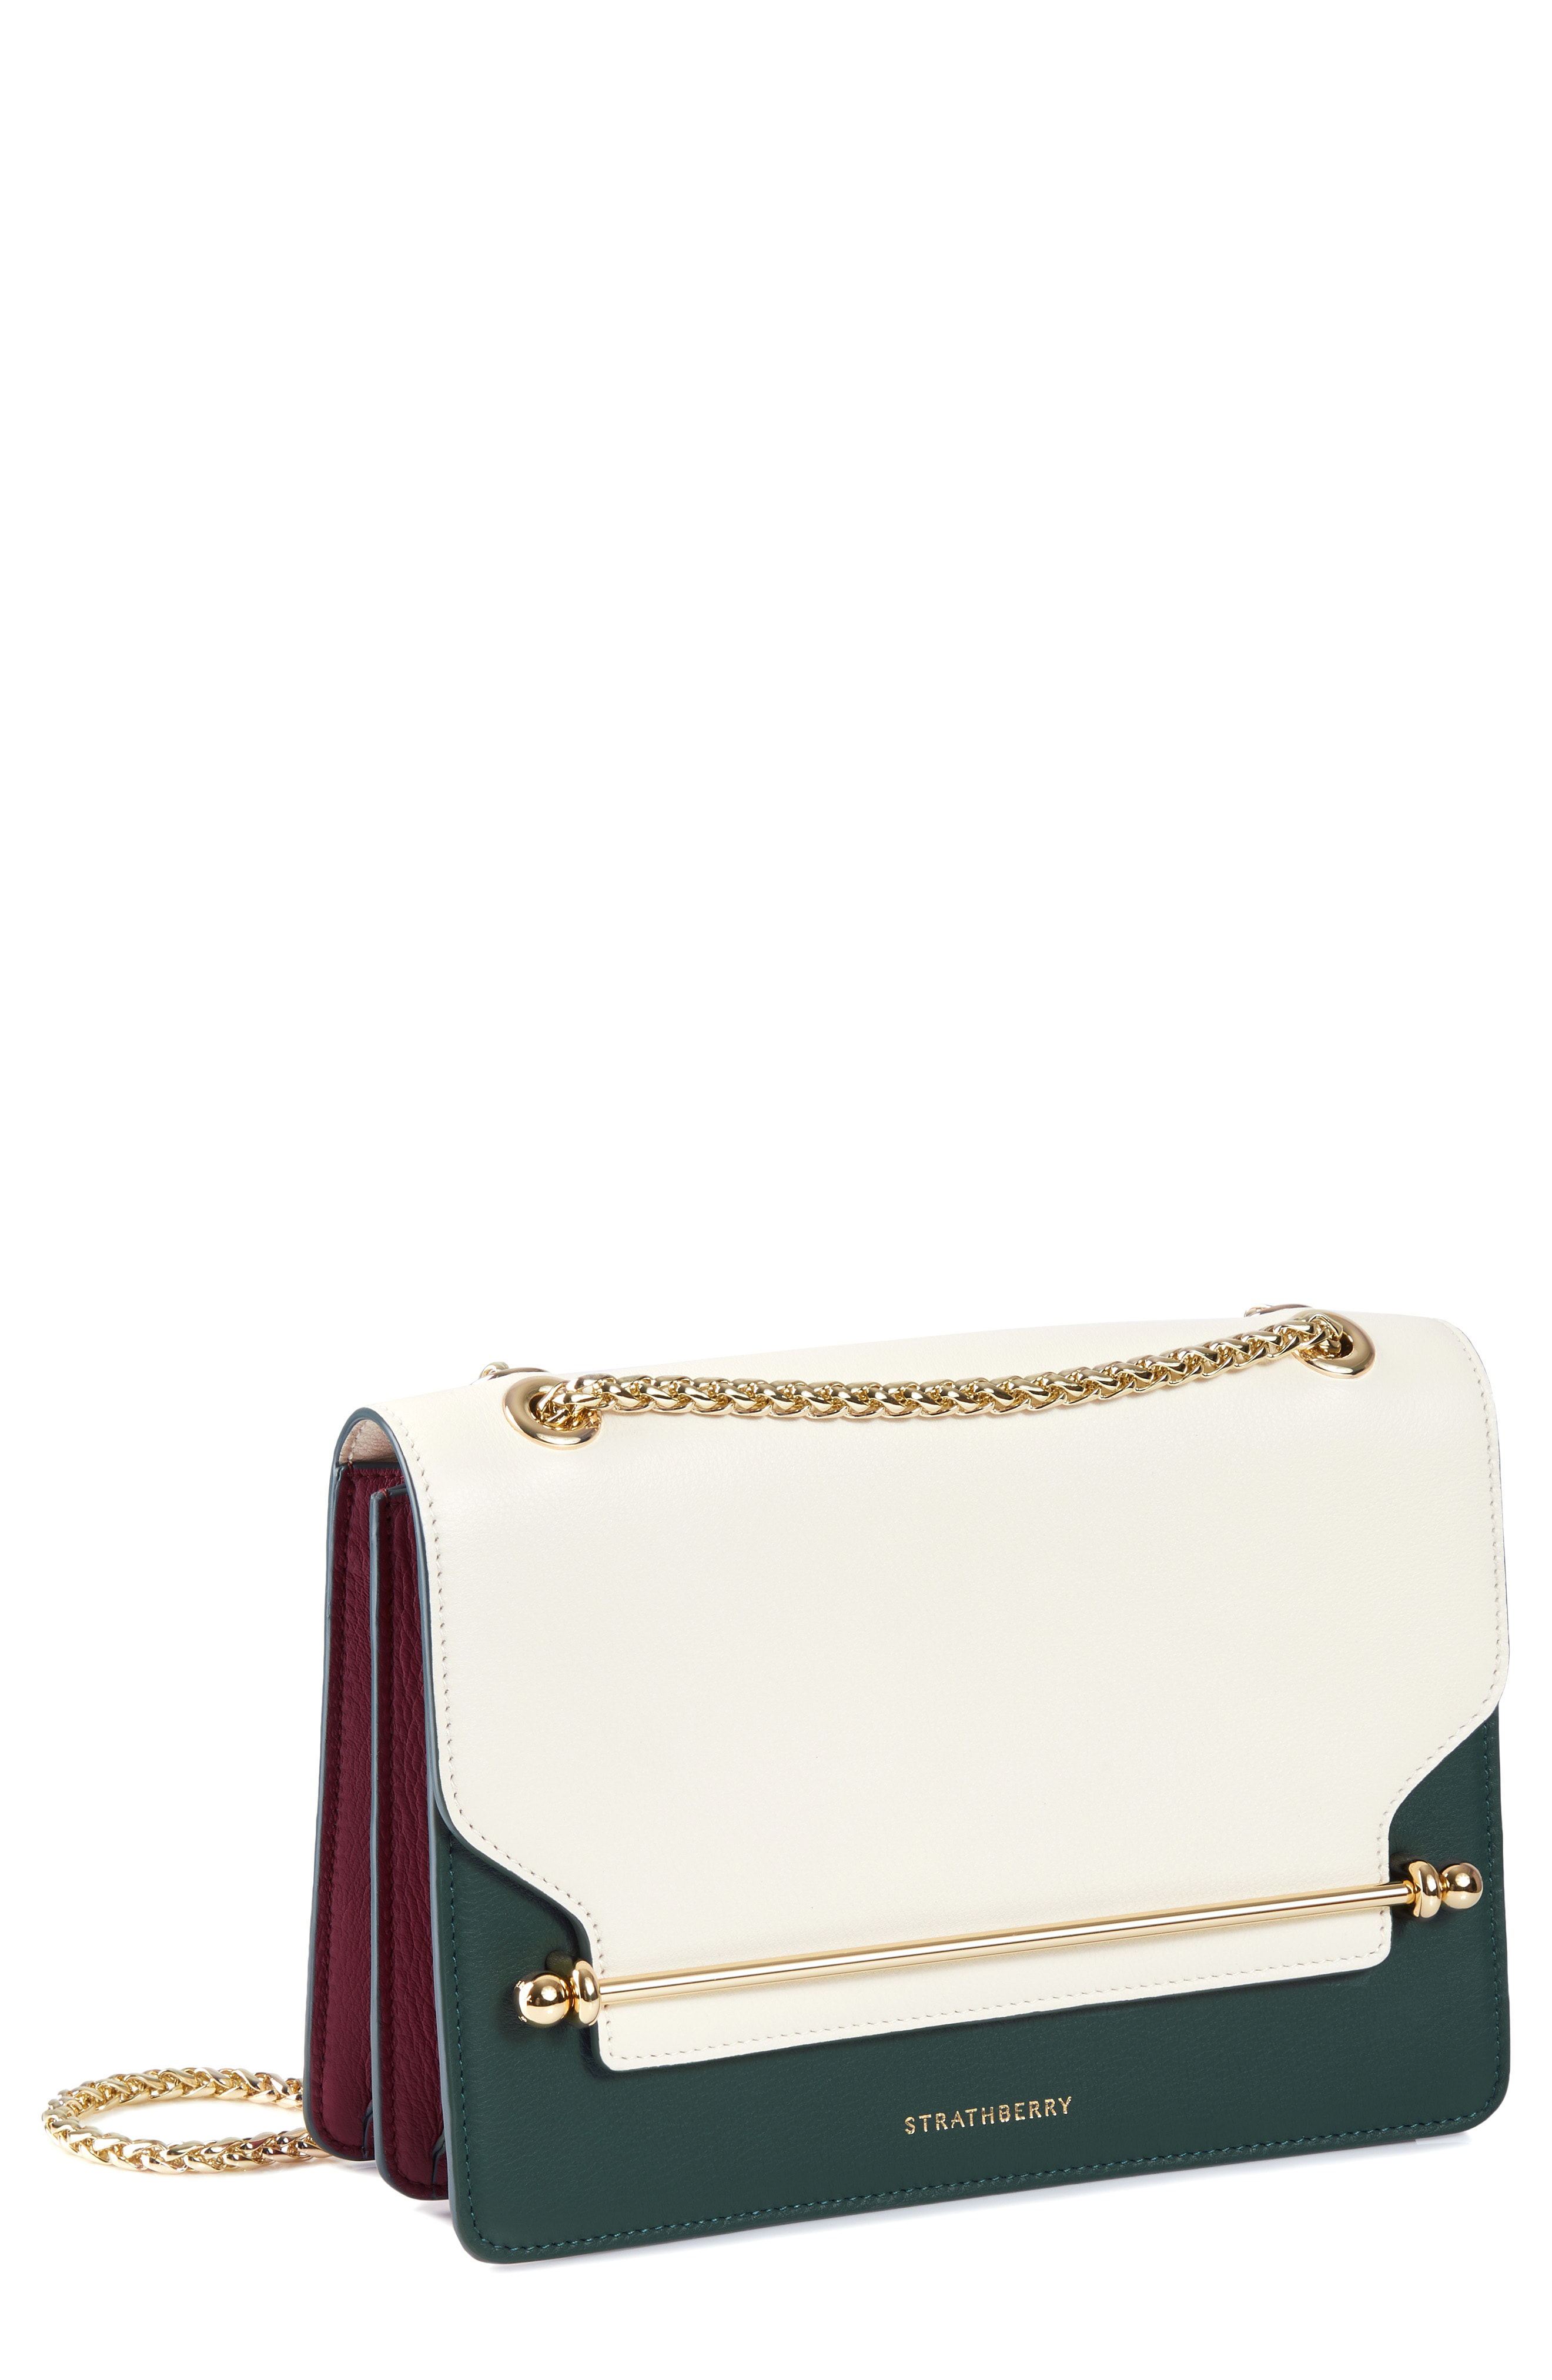 Strathberry East West Colorblock Leather Crossbody Bag - Ivory In Vanilla  Bottle  Green  434da65936766